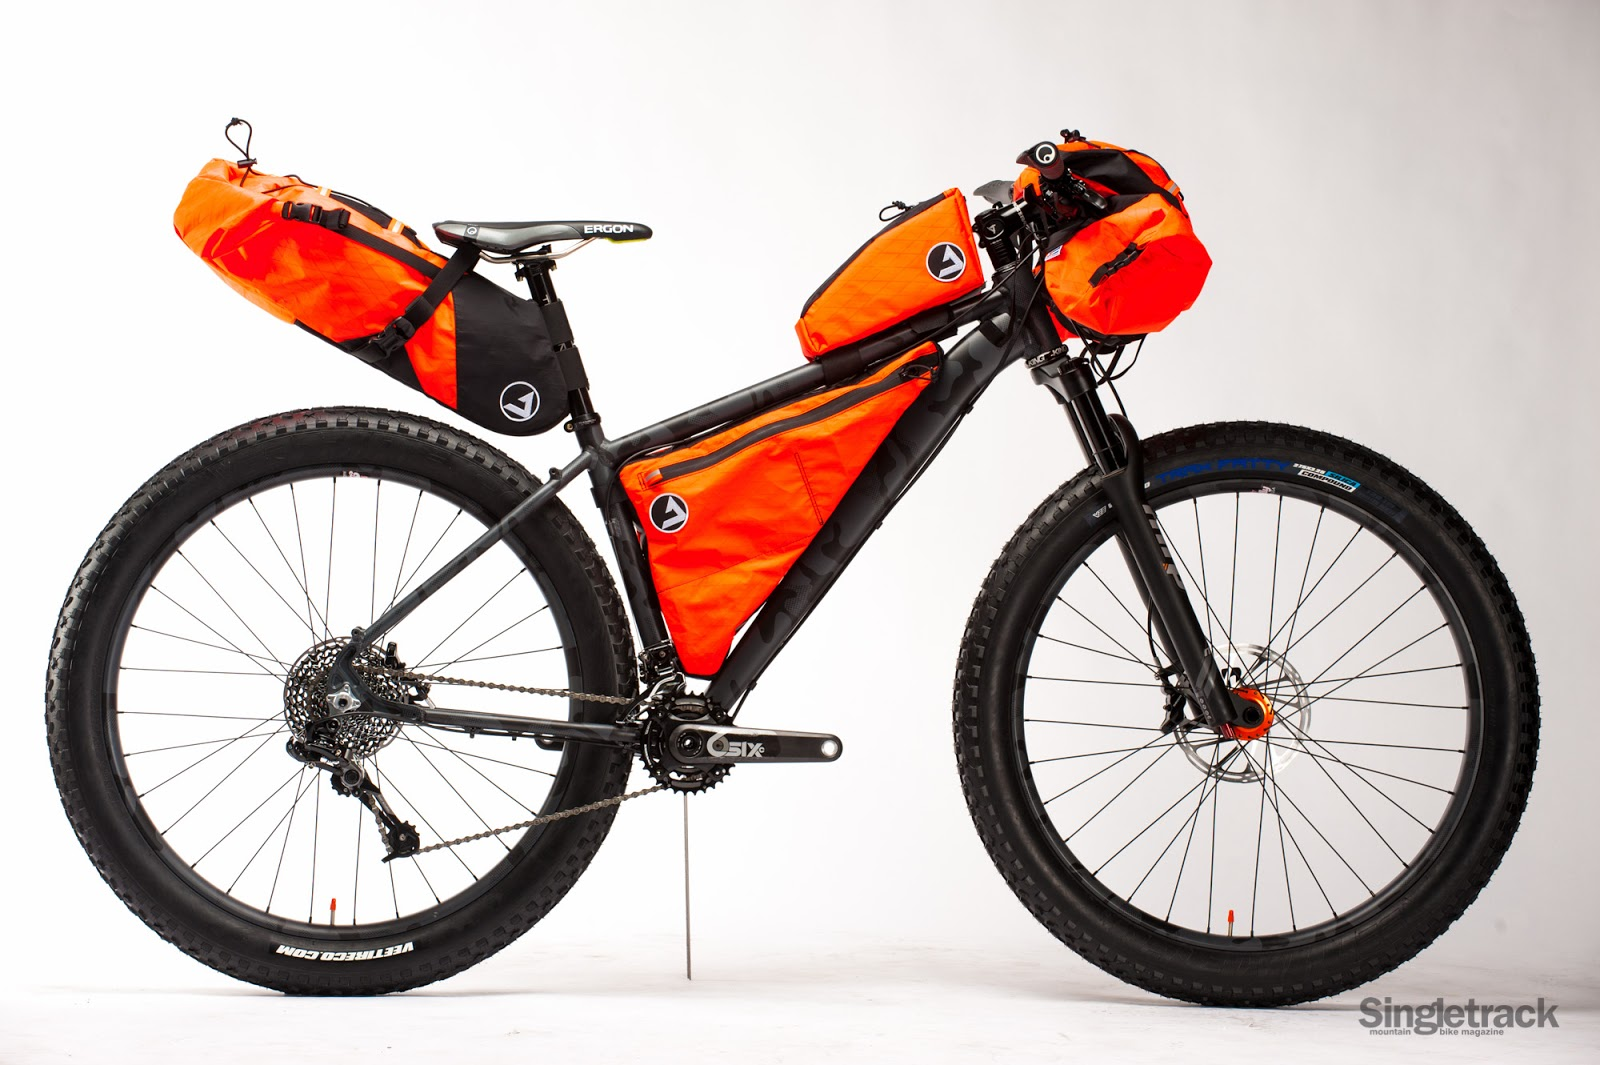 J Paks Adventure Cycling Frame Bags Sunday Morning Thoughts On